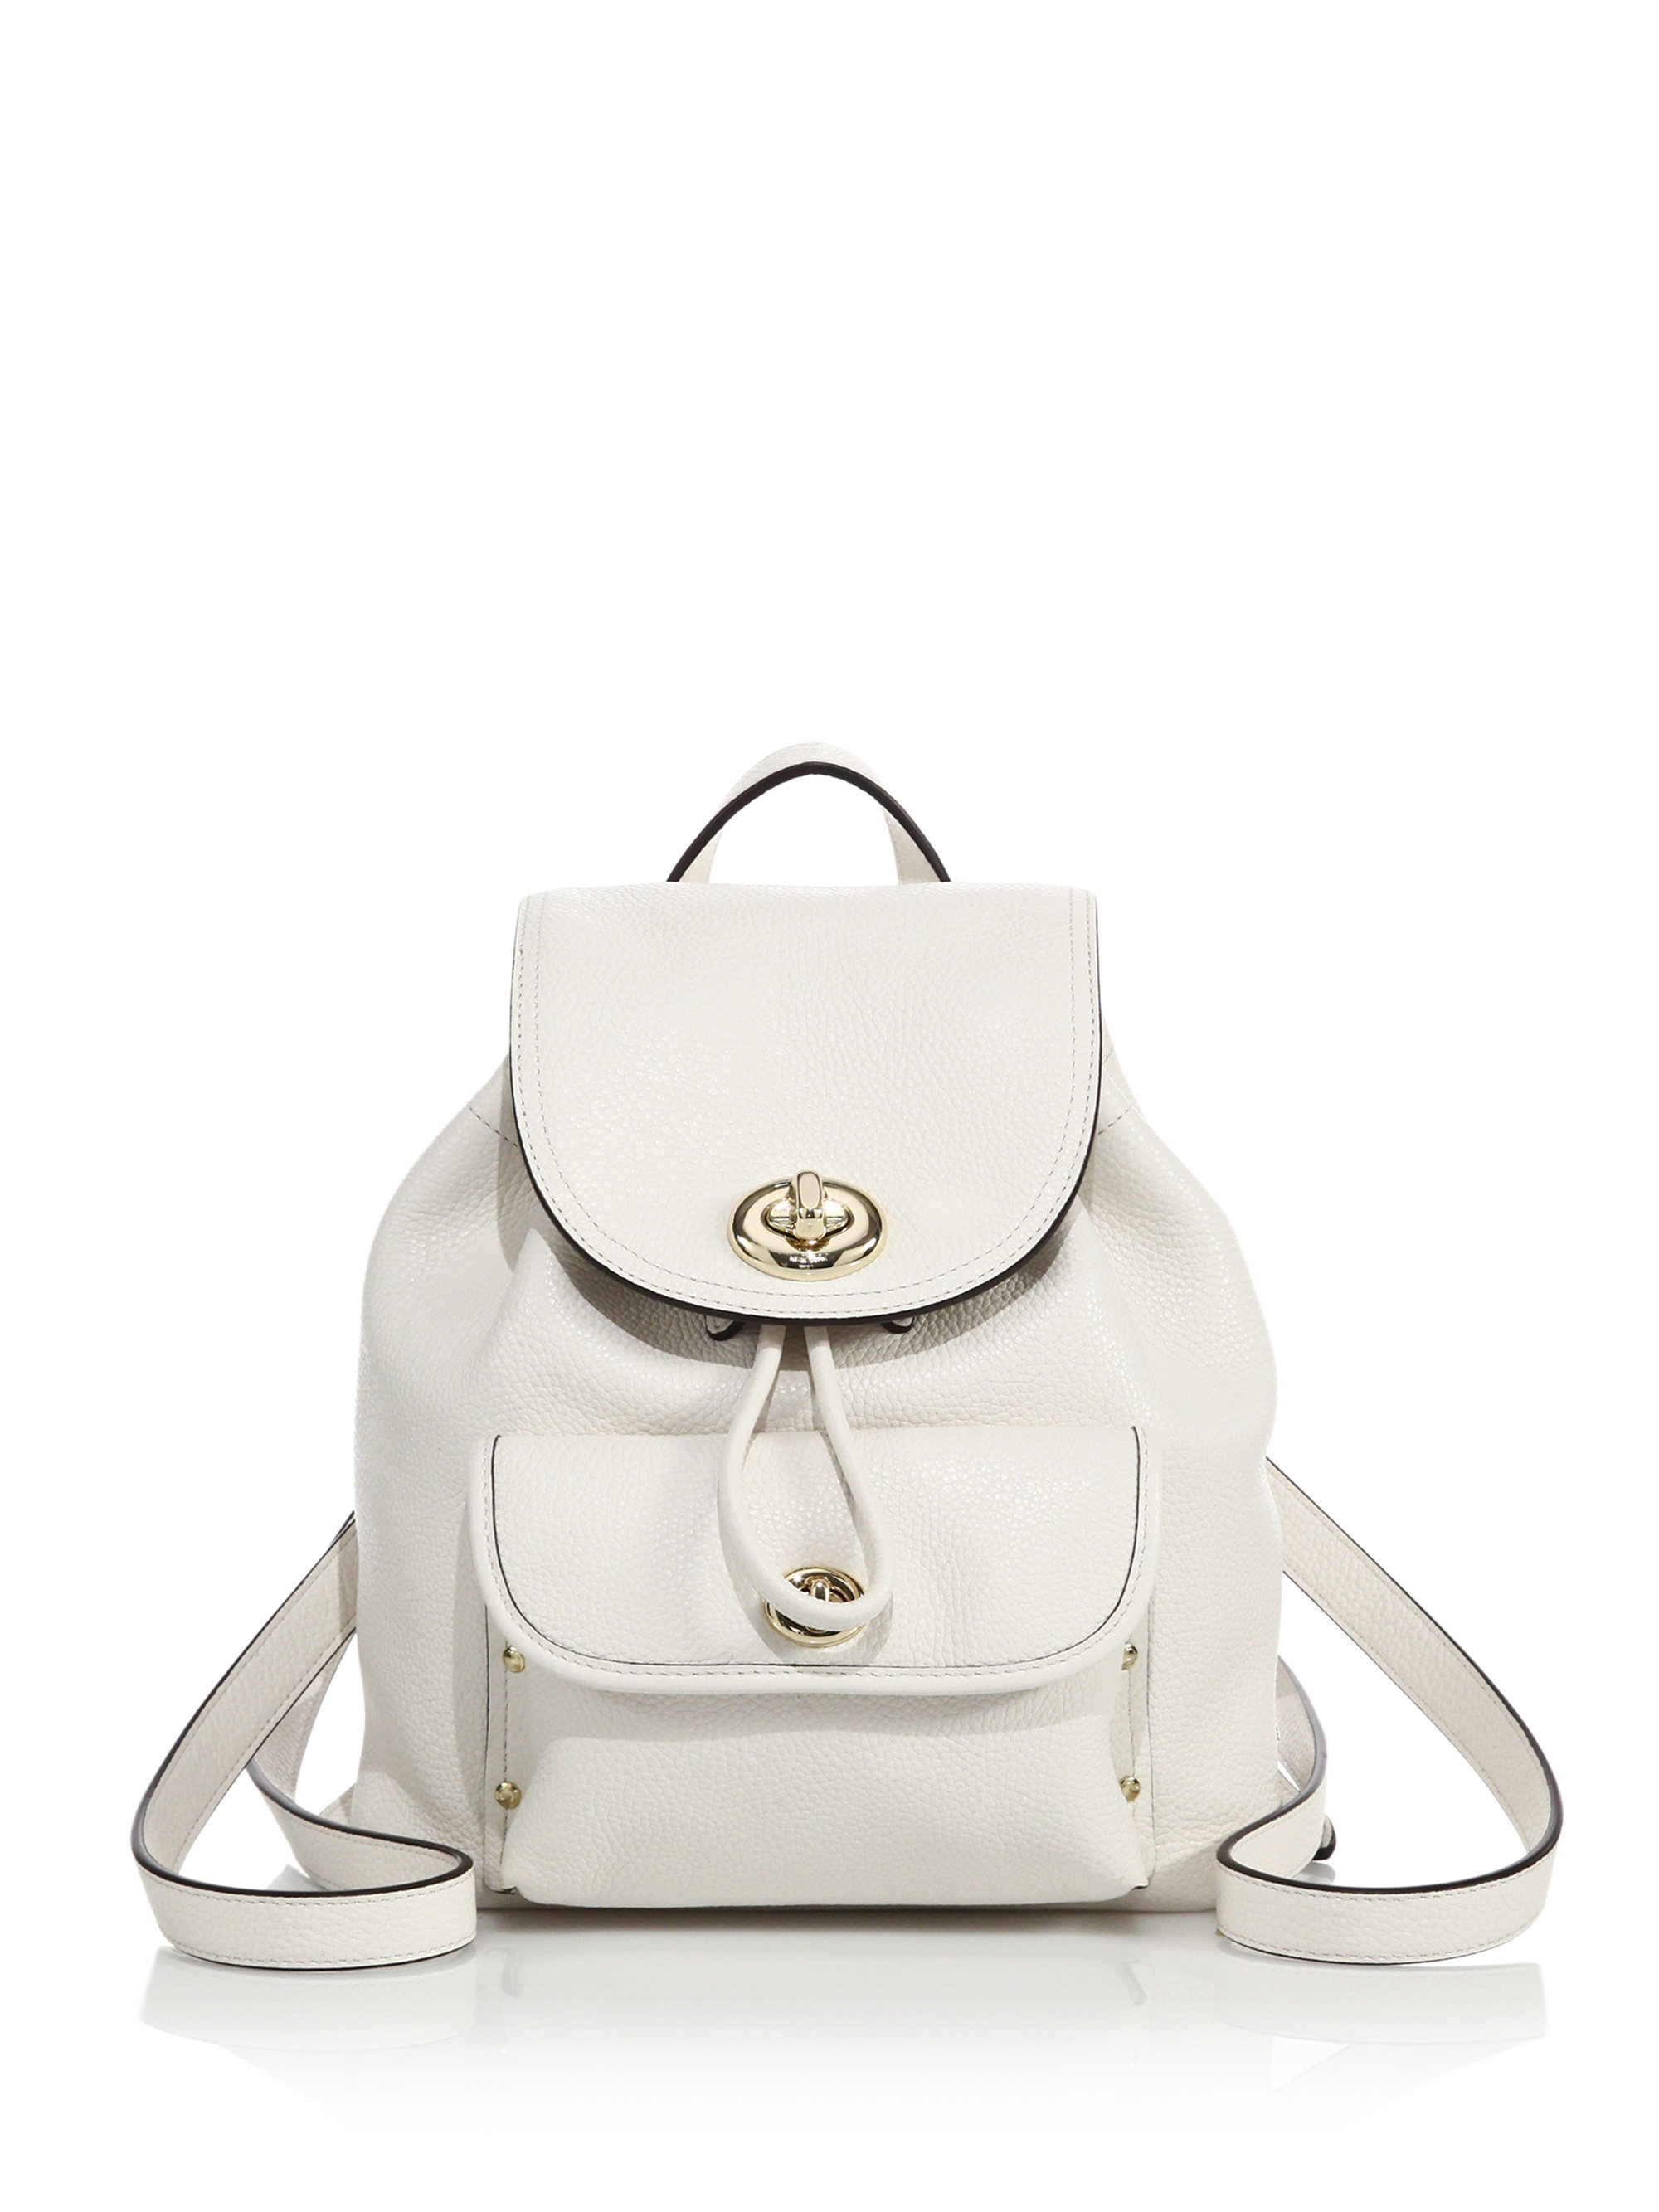 adf829af57f4 ... switzerland lyst coach mini leather turnlock backpack in white 1b65e  2ee67